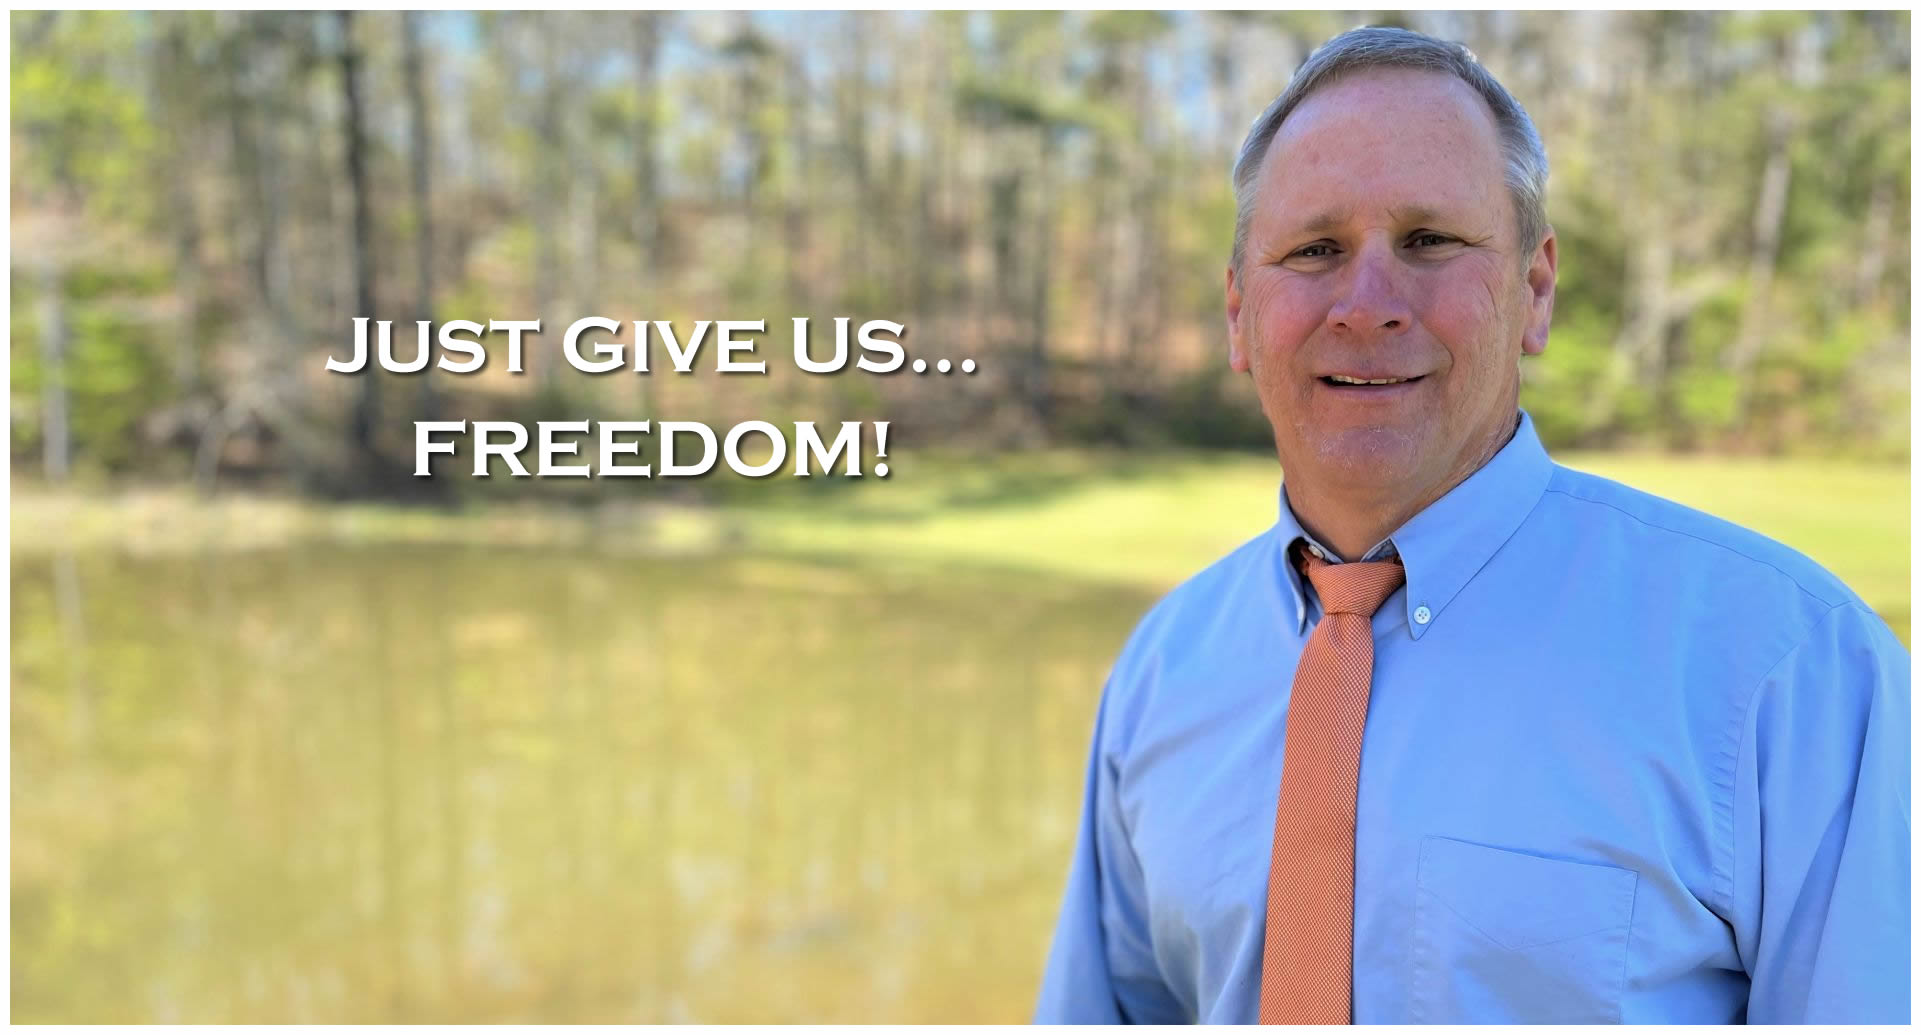 JUST GIVE US...FREEDOM